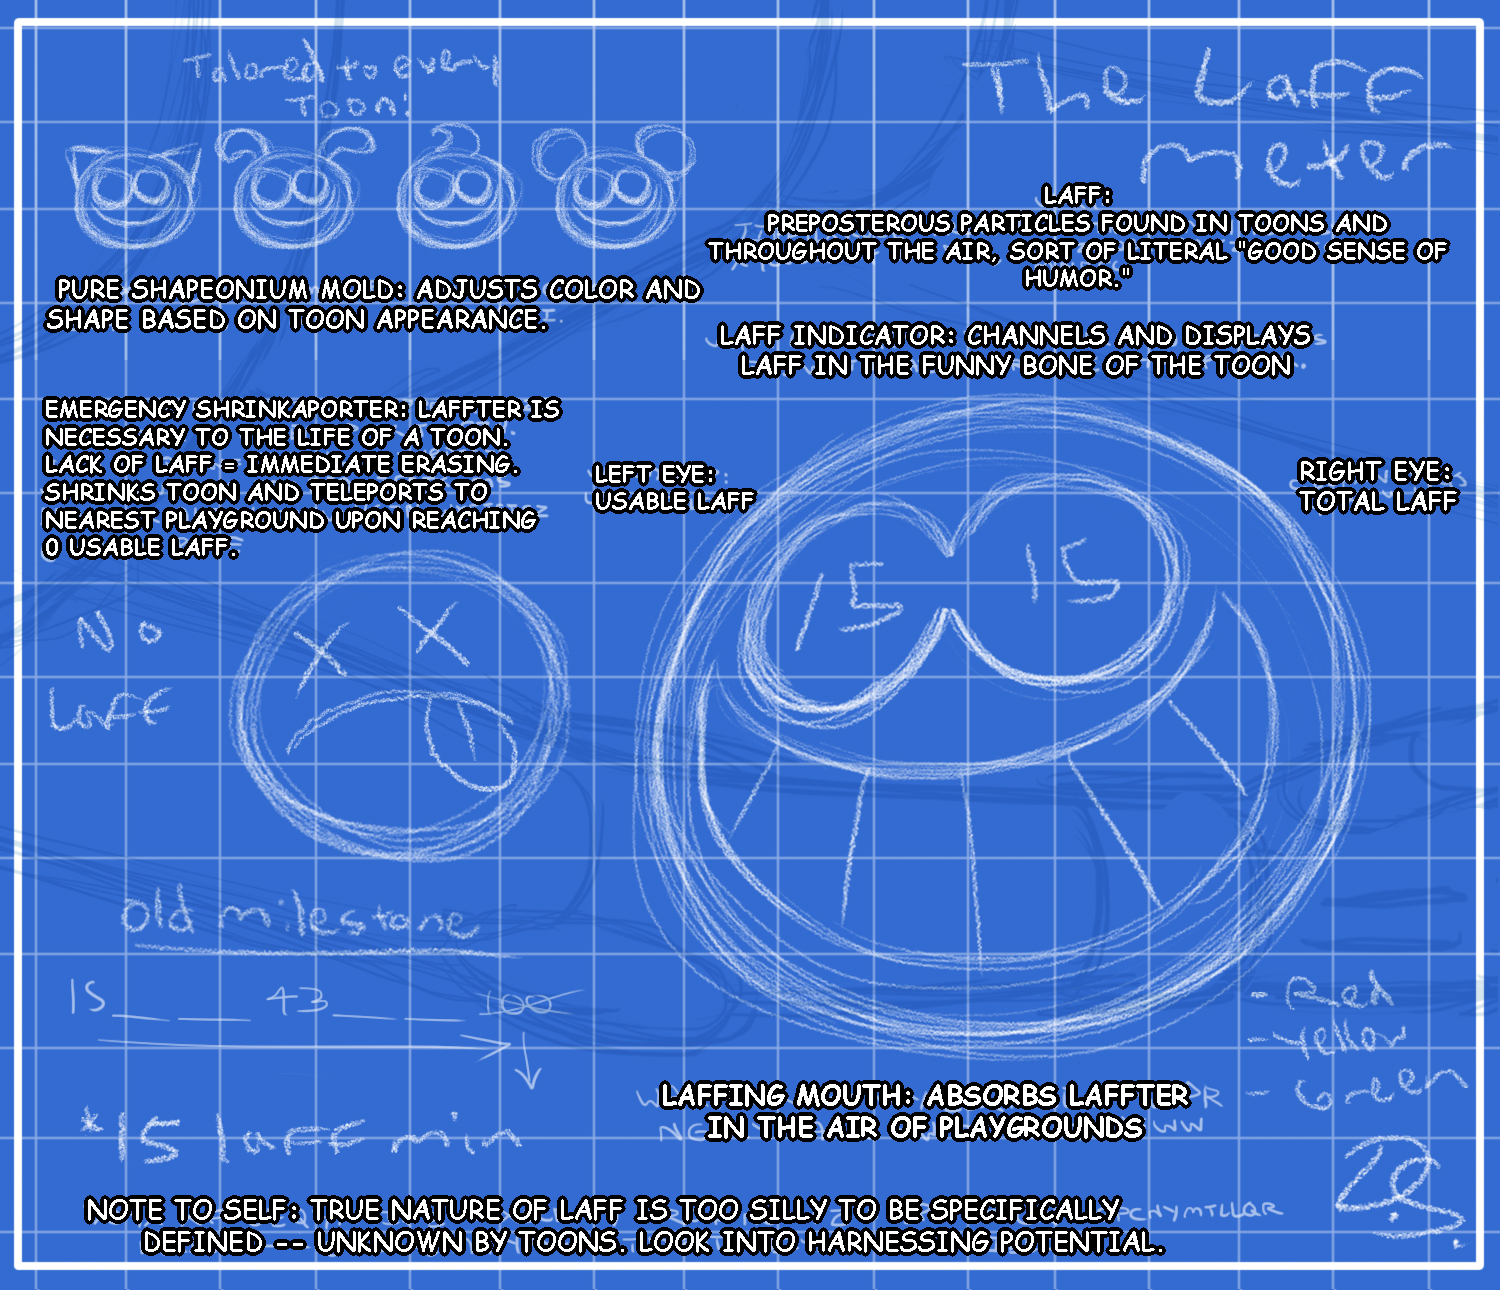 Arg lab1 t43 emergency monitor broadcast 2014 01 26 wiki decrypted blueprint malvernweather Image collections